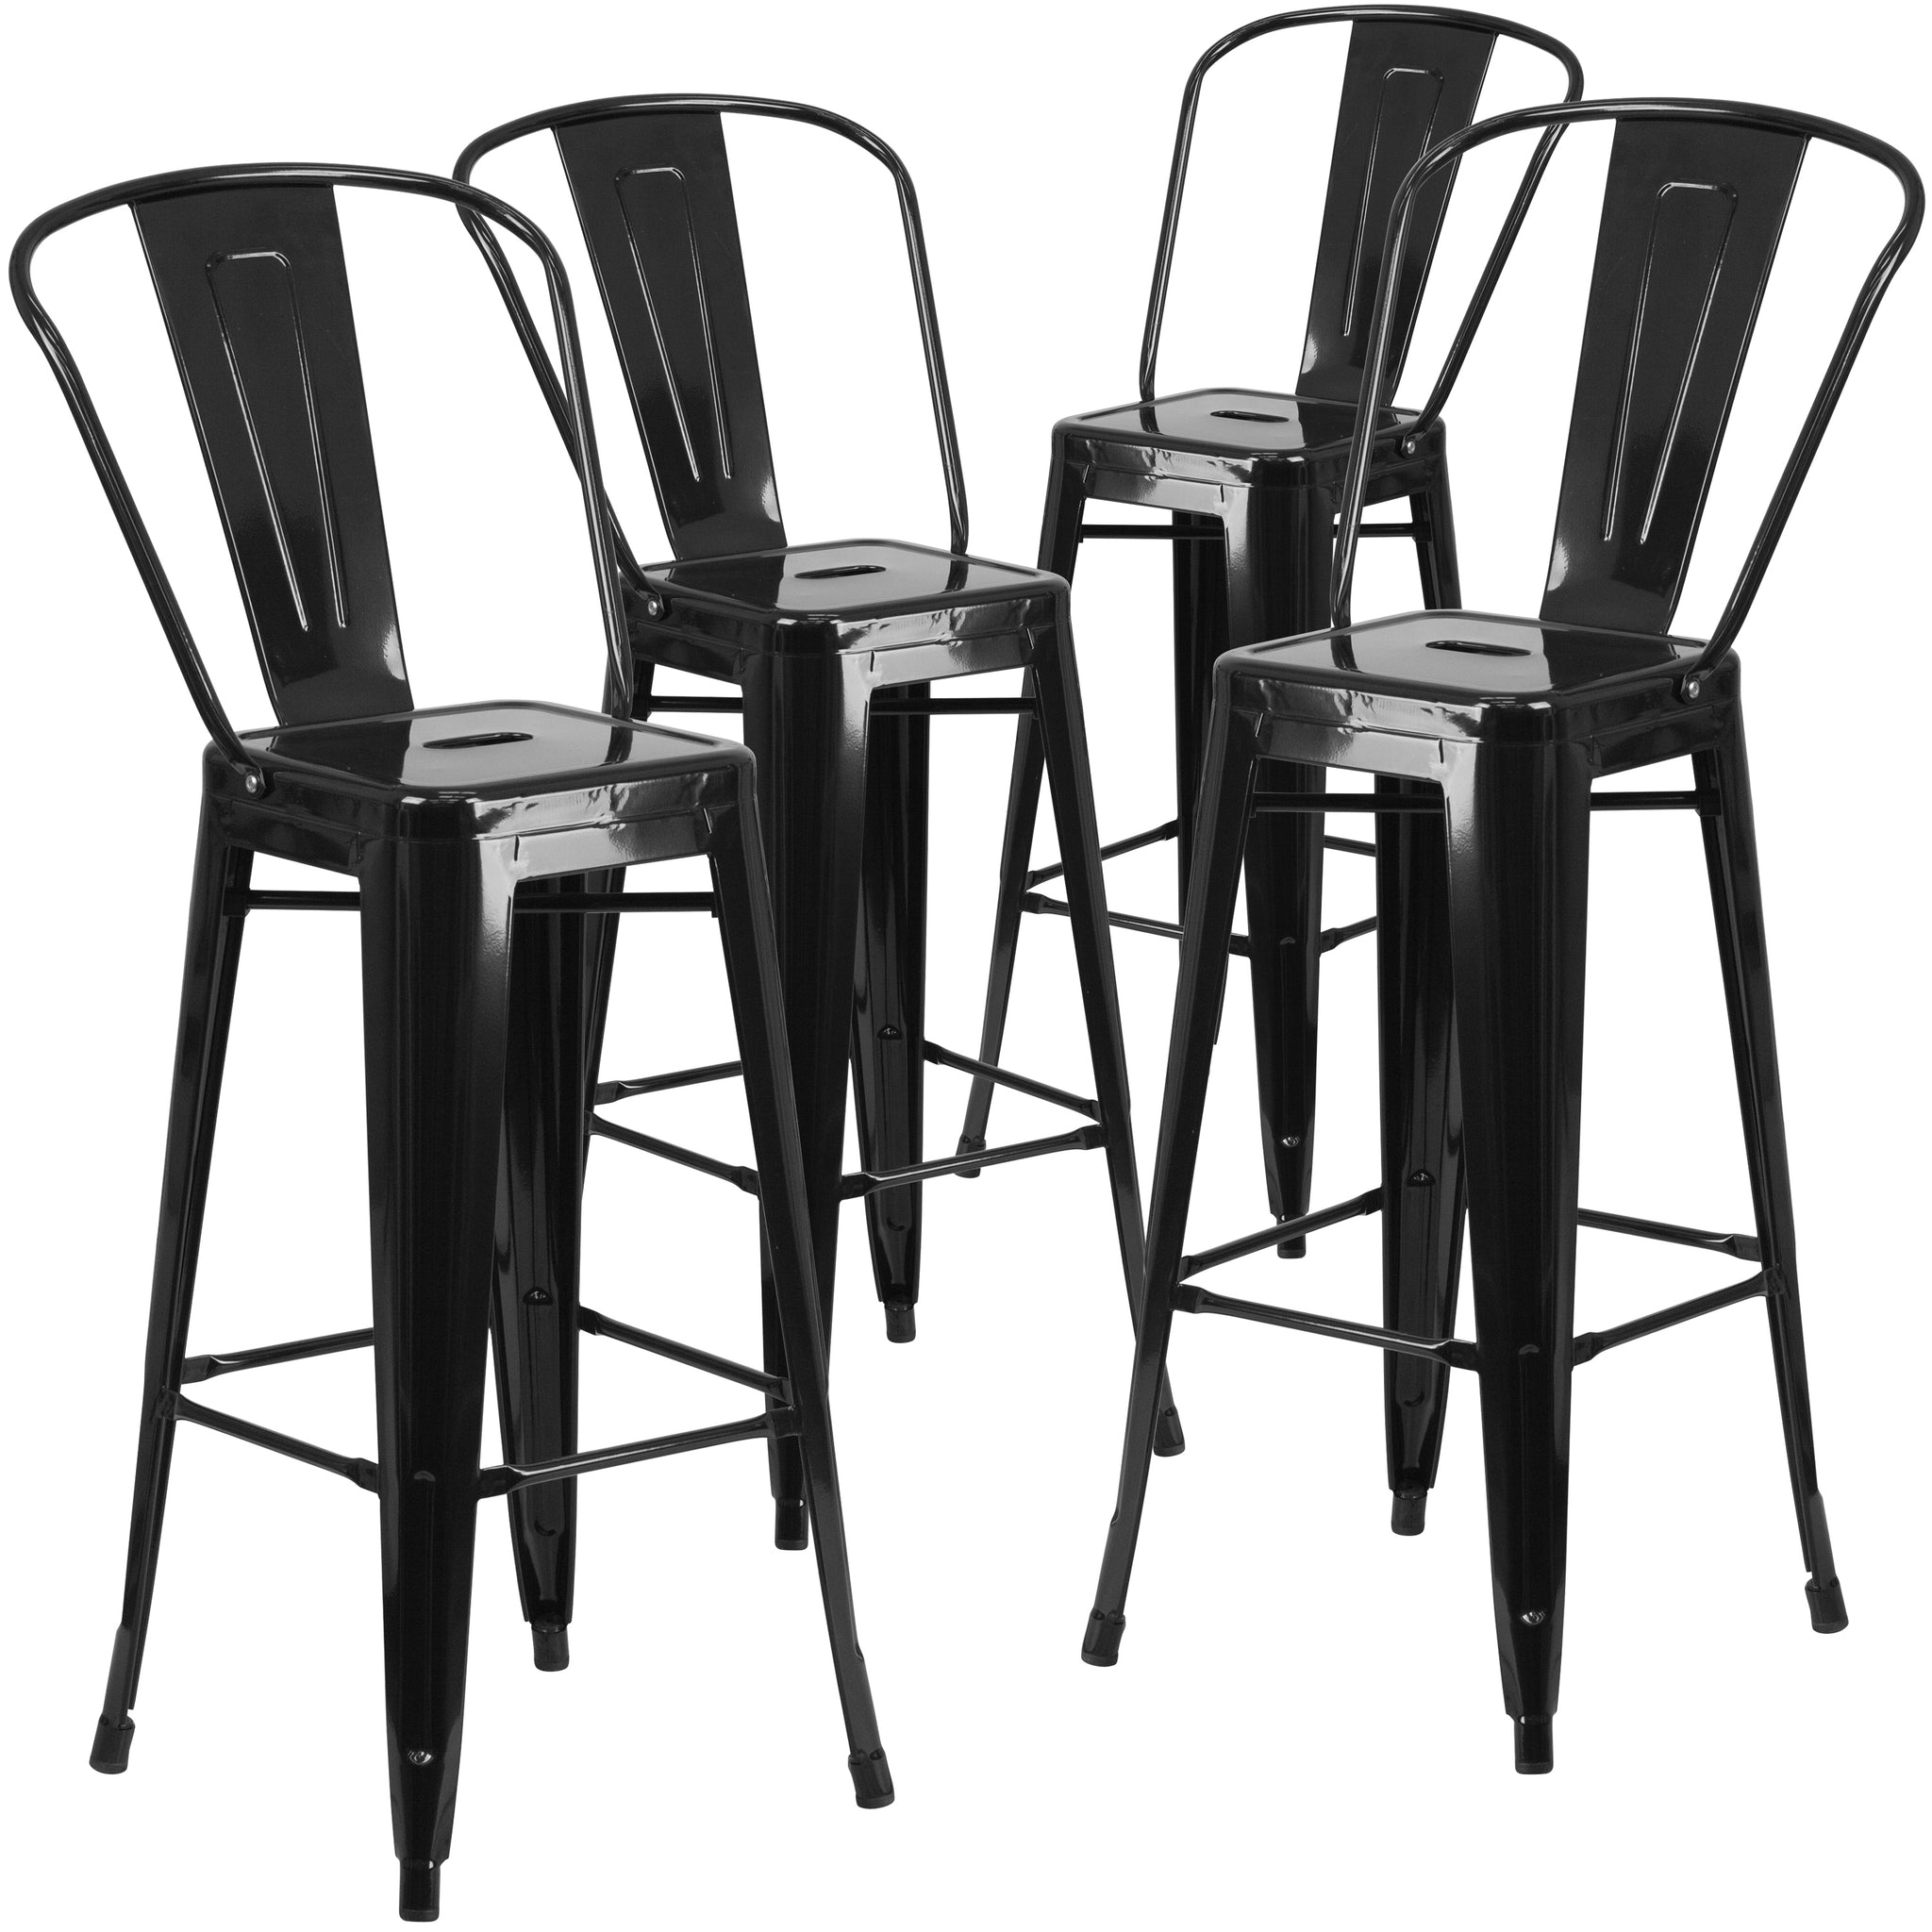 4 Pk. 30'' High Metal Indoor-Outdoor Barstool with Back: Black